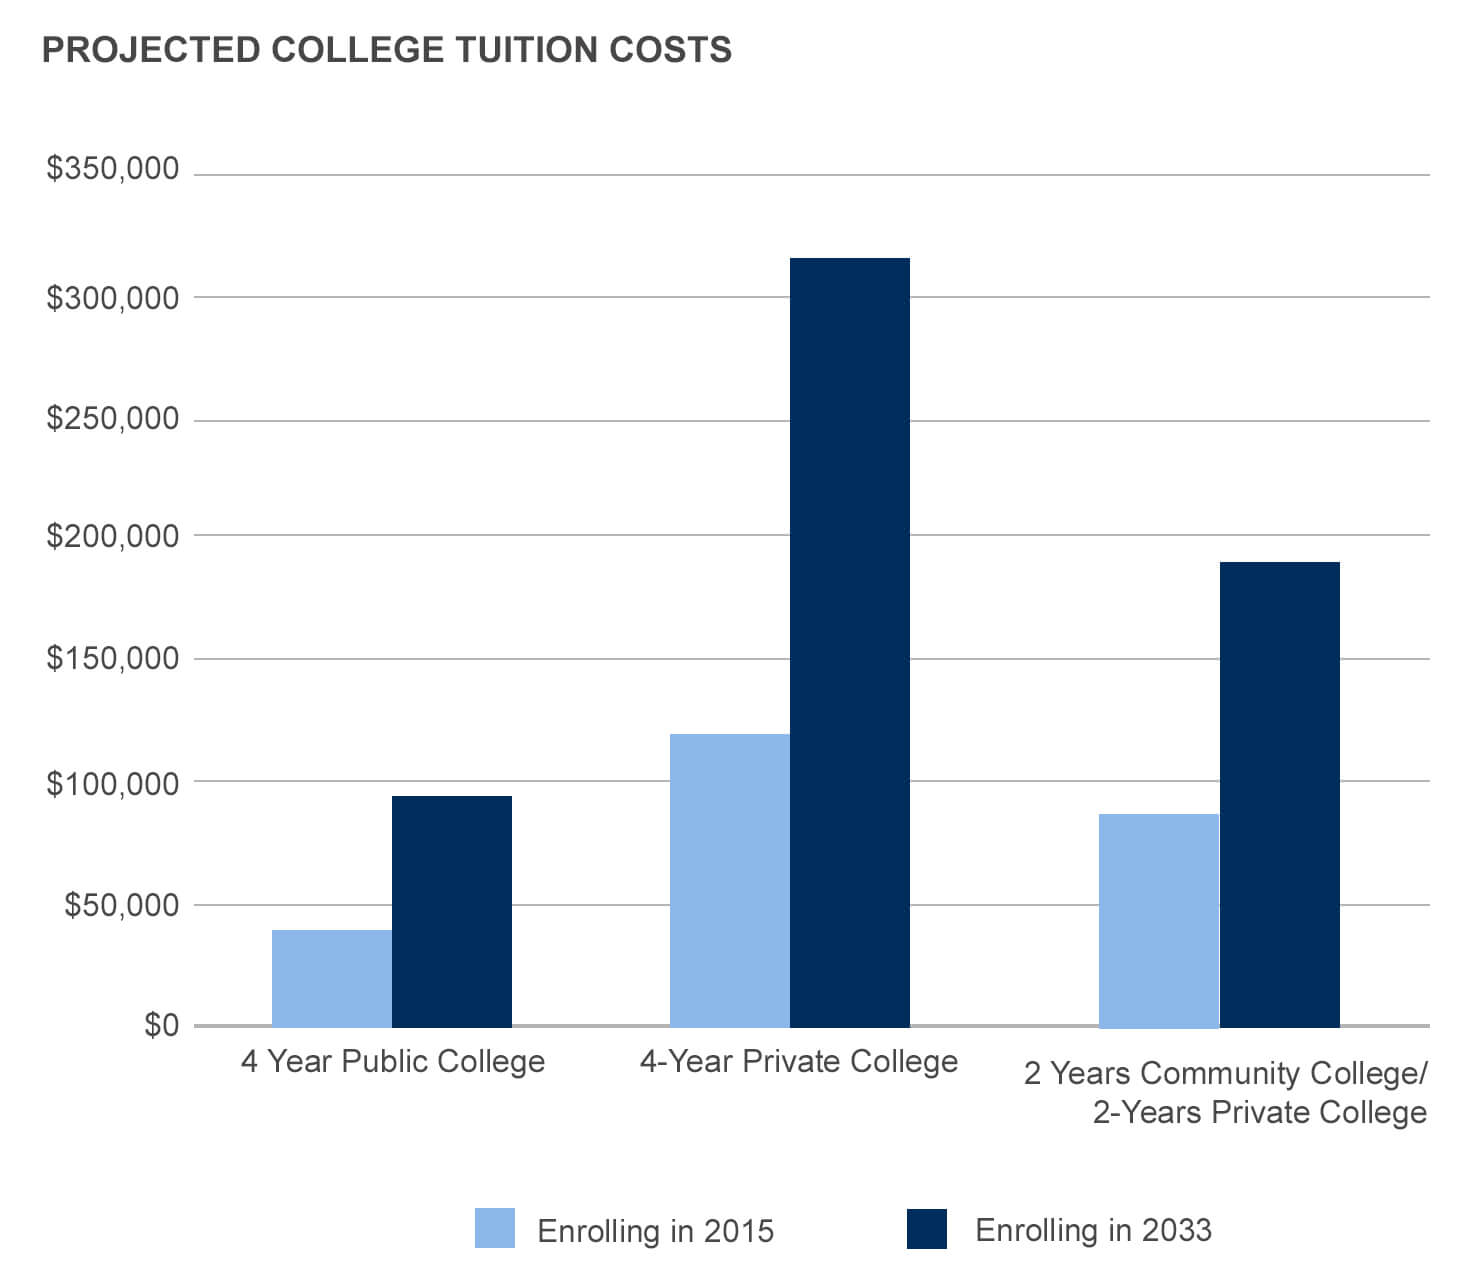 Projected College Tuition Costs